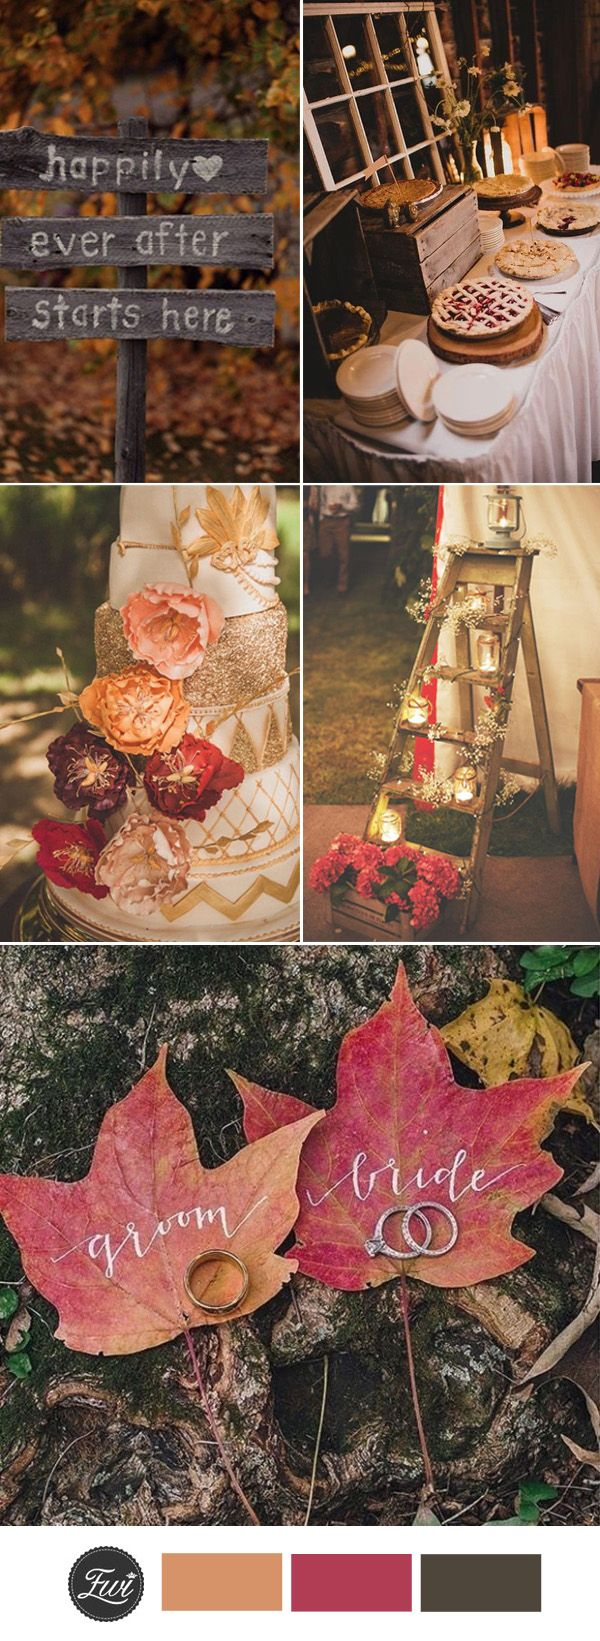 Top 10 fall wedding color ideas for 2017 trends weddings wedding rustic fall wedding color ideas for 2017 junglespirit Images